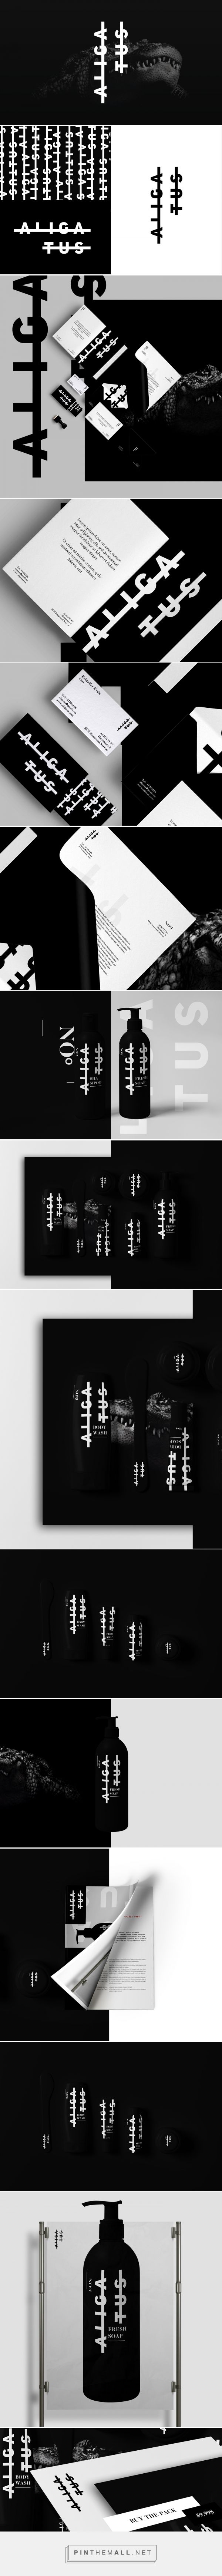 Aligatus Branding and Packaging by Kristoffer Kvale on Behance | Fivestar Branding – Design and Branding Agency & Inspiration Gallery